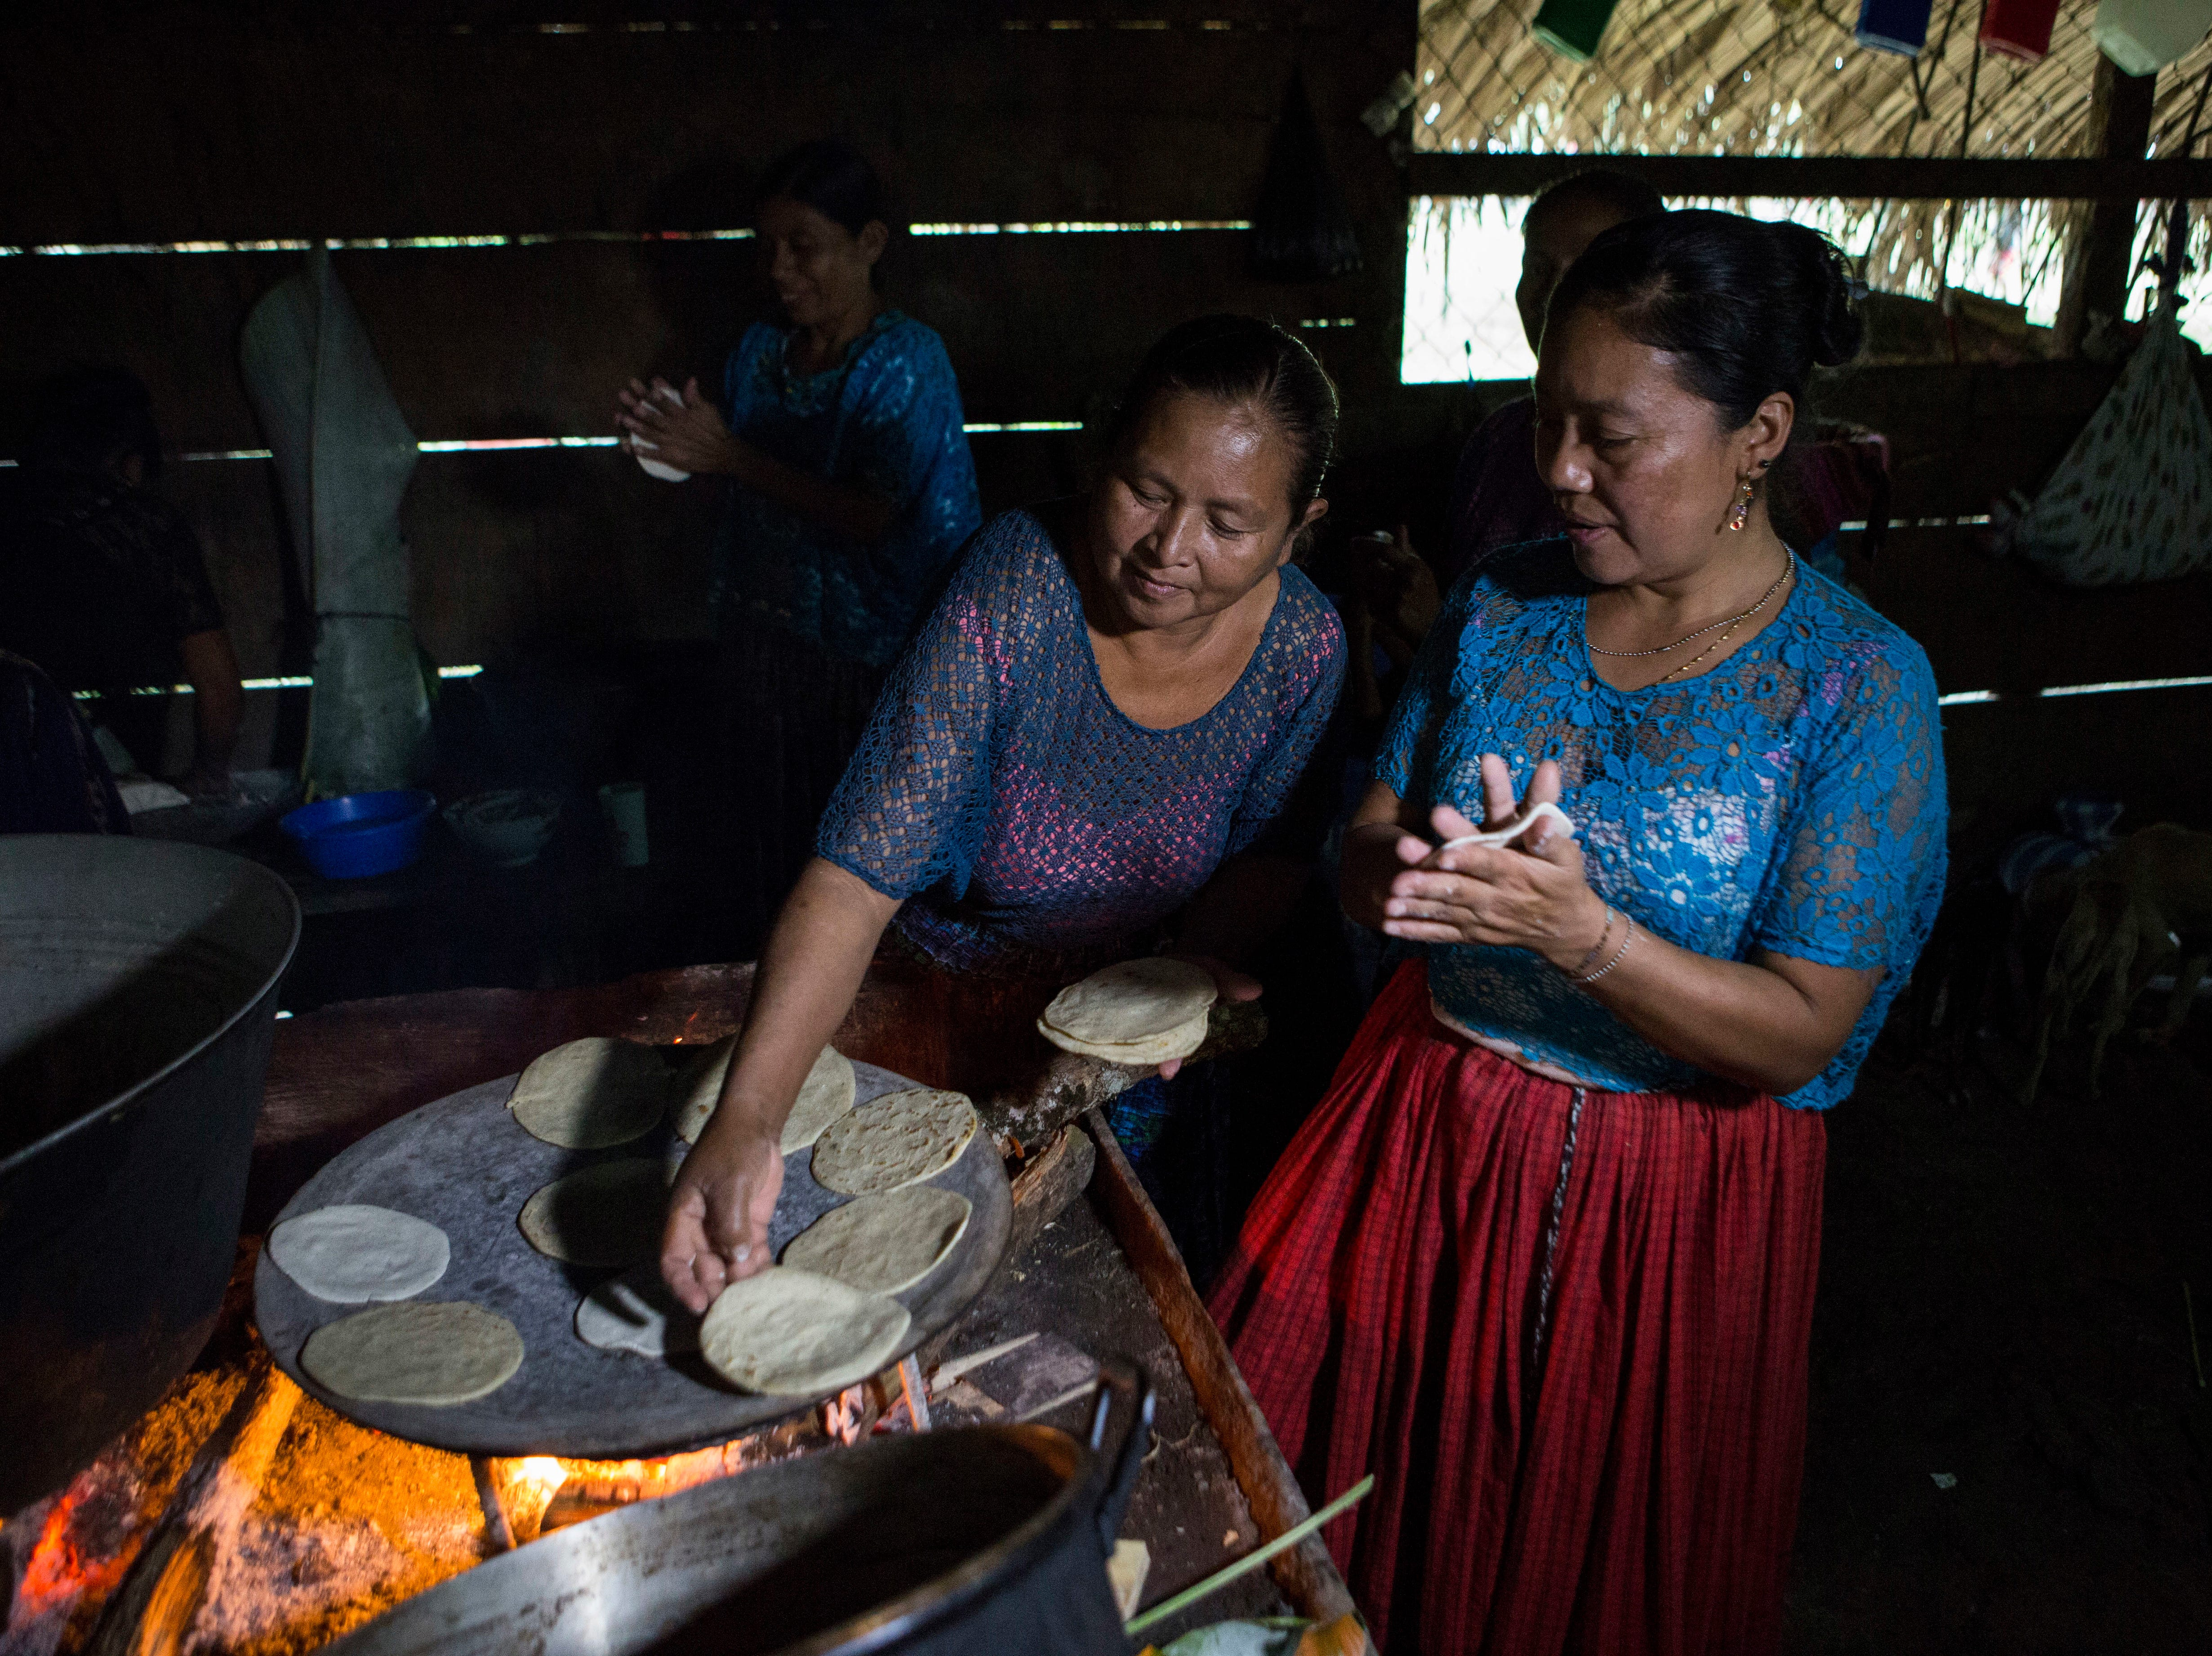 Women make corn tortillas at Jakelin Caal Maquin grandfather's house in San Antonio Secortez, Guatemala, Sunday, Dec. 23, 2018. The body of Caal Maquin, 7, who died while in custody of the U.S. Border Patrol, arrived in her native Guatemala on Sunday and was being driven hours into the countryside to be handed over to family members for a last goodbye.